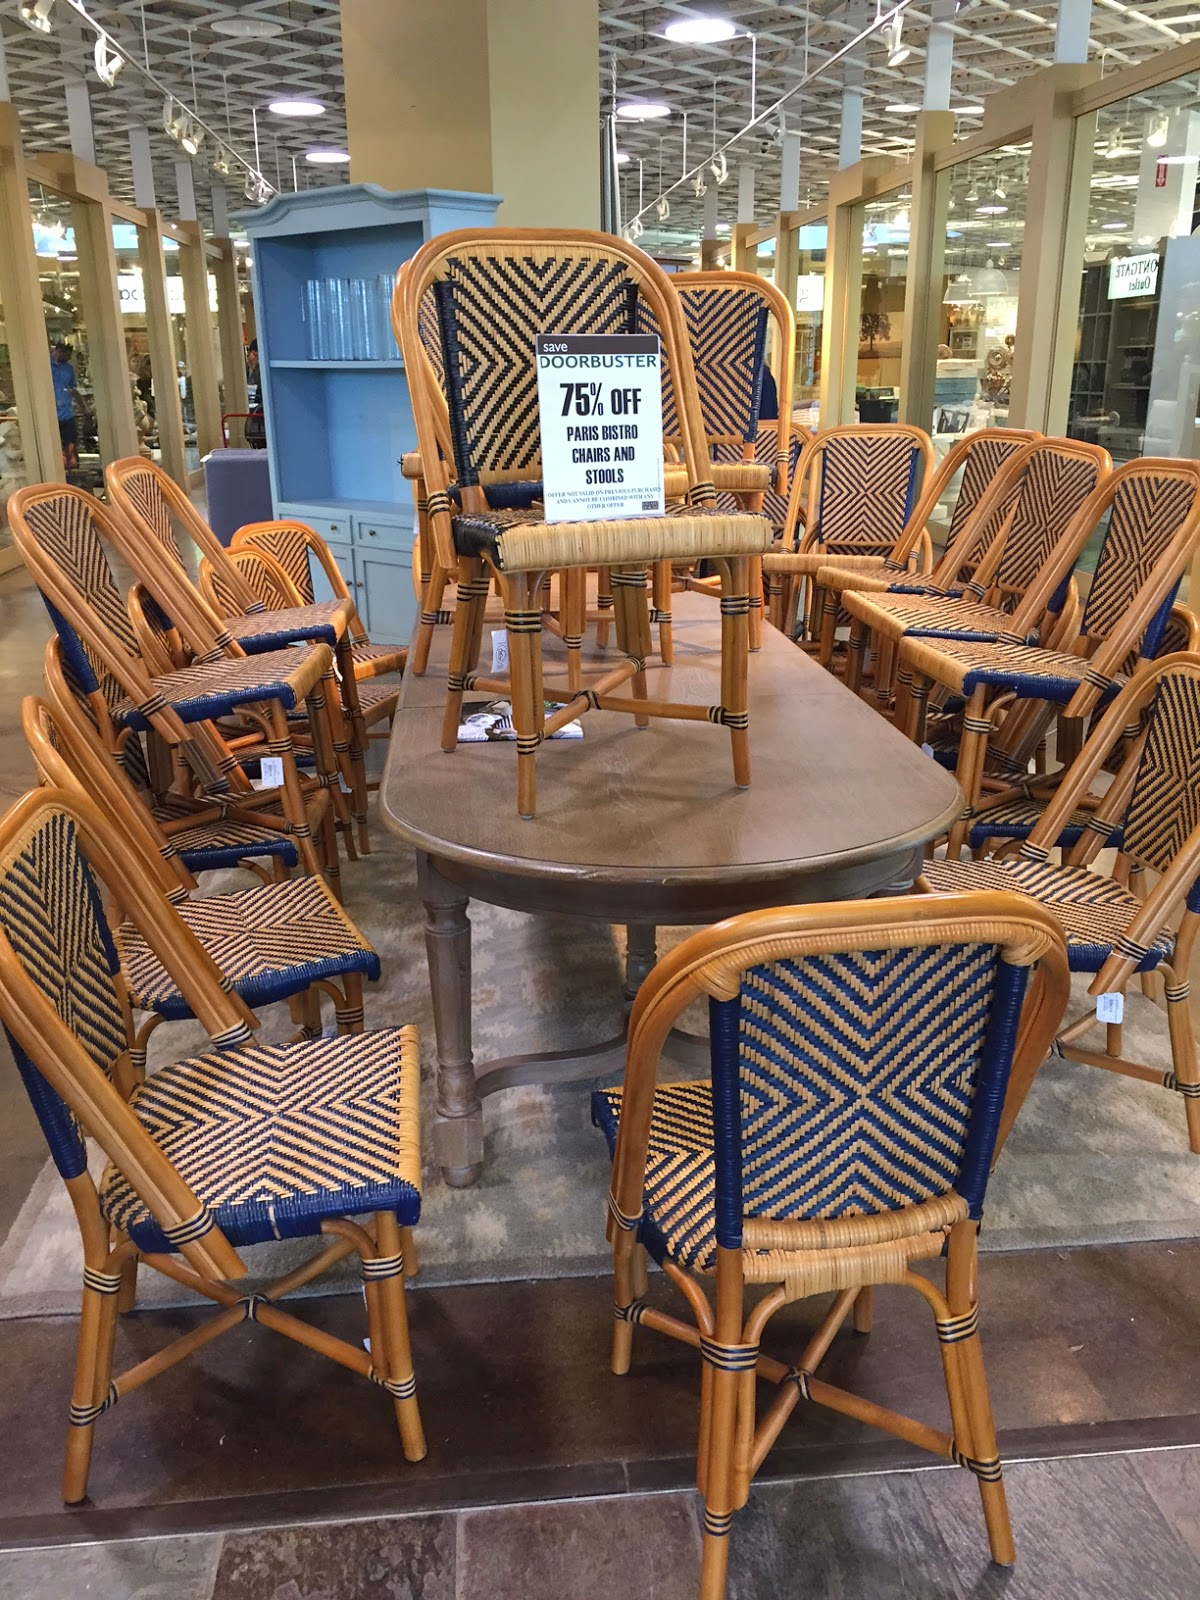 Ballard Design Outlet West Chester how i stumbled upon $40 chairs from ballard designs - simply sarah style